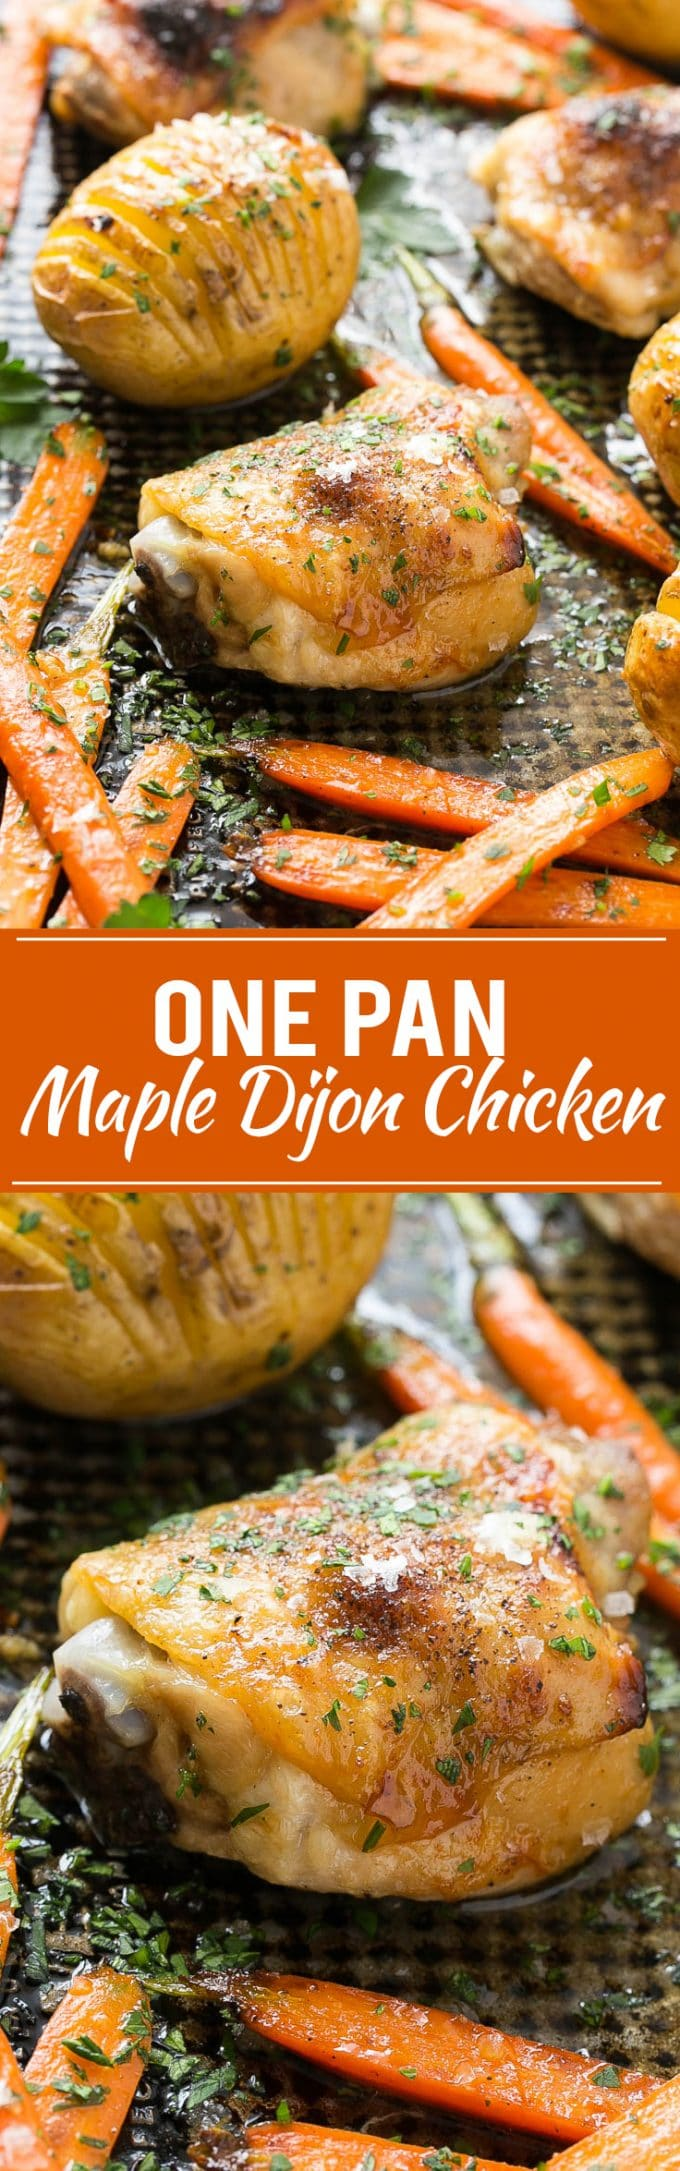 Maple Dijon Chicken with Hasselback Potatoes and Carrots Recipe | Maple Dijon Chicken | Hasselback Potatoes | Best Maple Dijon Chicken | One Pan Meal | One Pan Maple Mustard Chicken | One Pan Maple Dijon Chicken